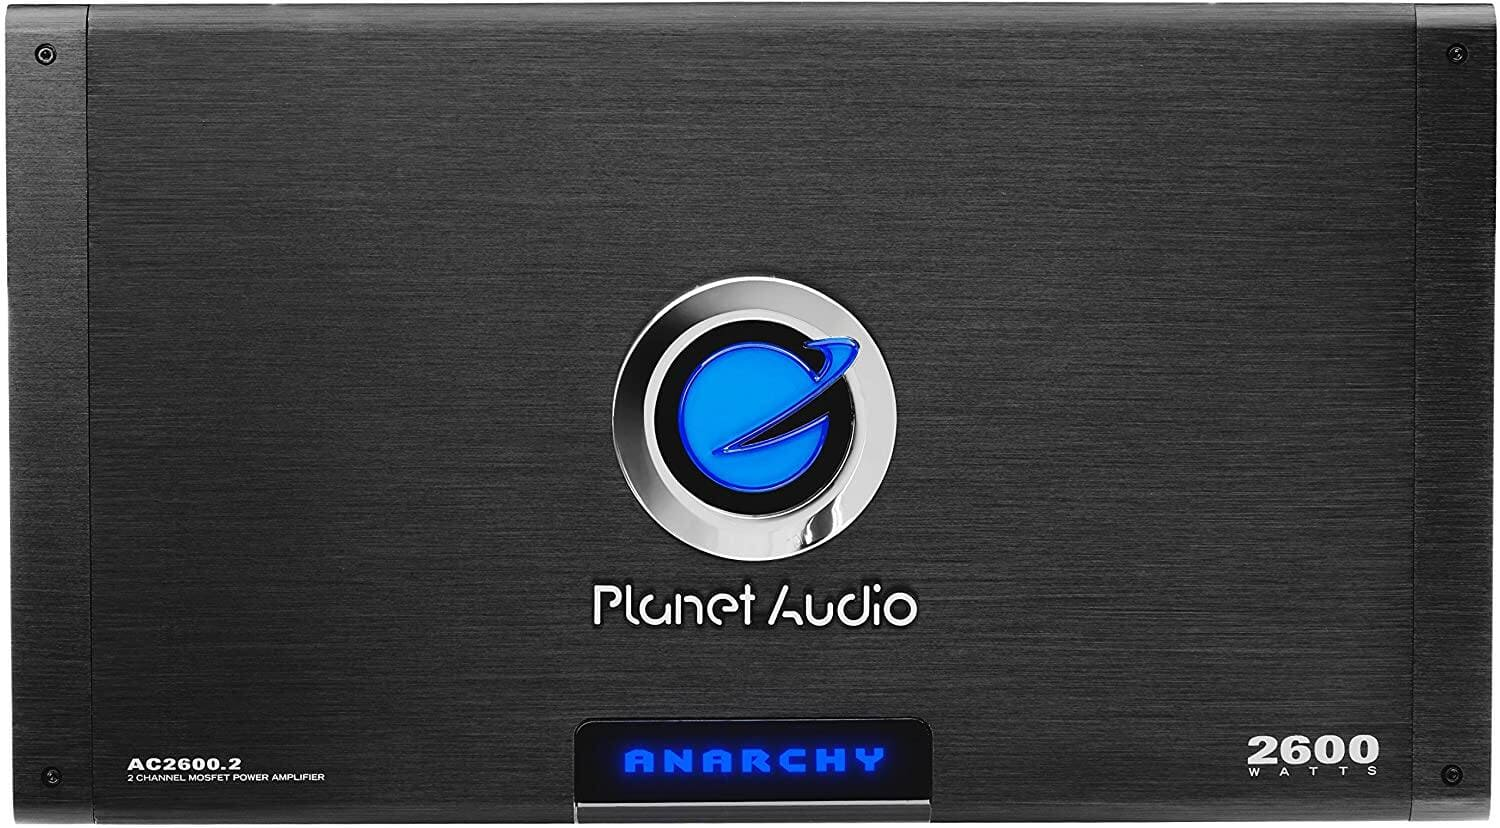 Planet Audio AC2600.2 2 Channel 2600W Car Amplifier for $129.99 + Free Shipping